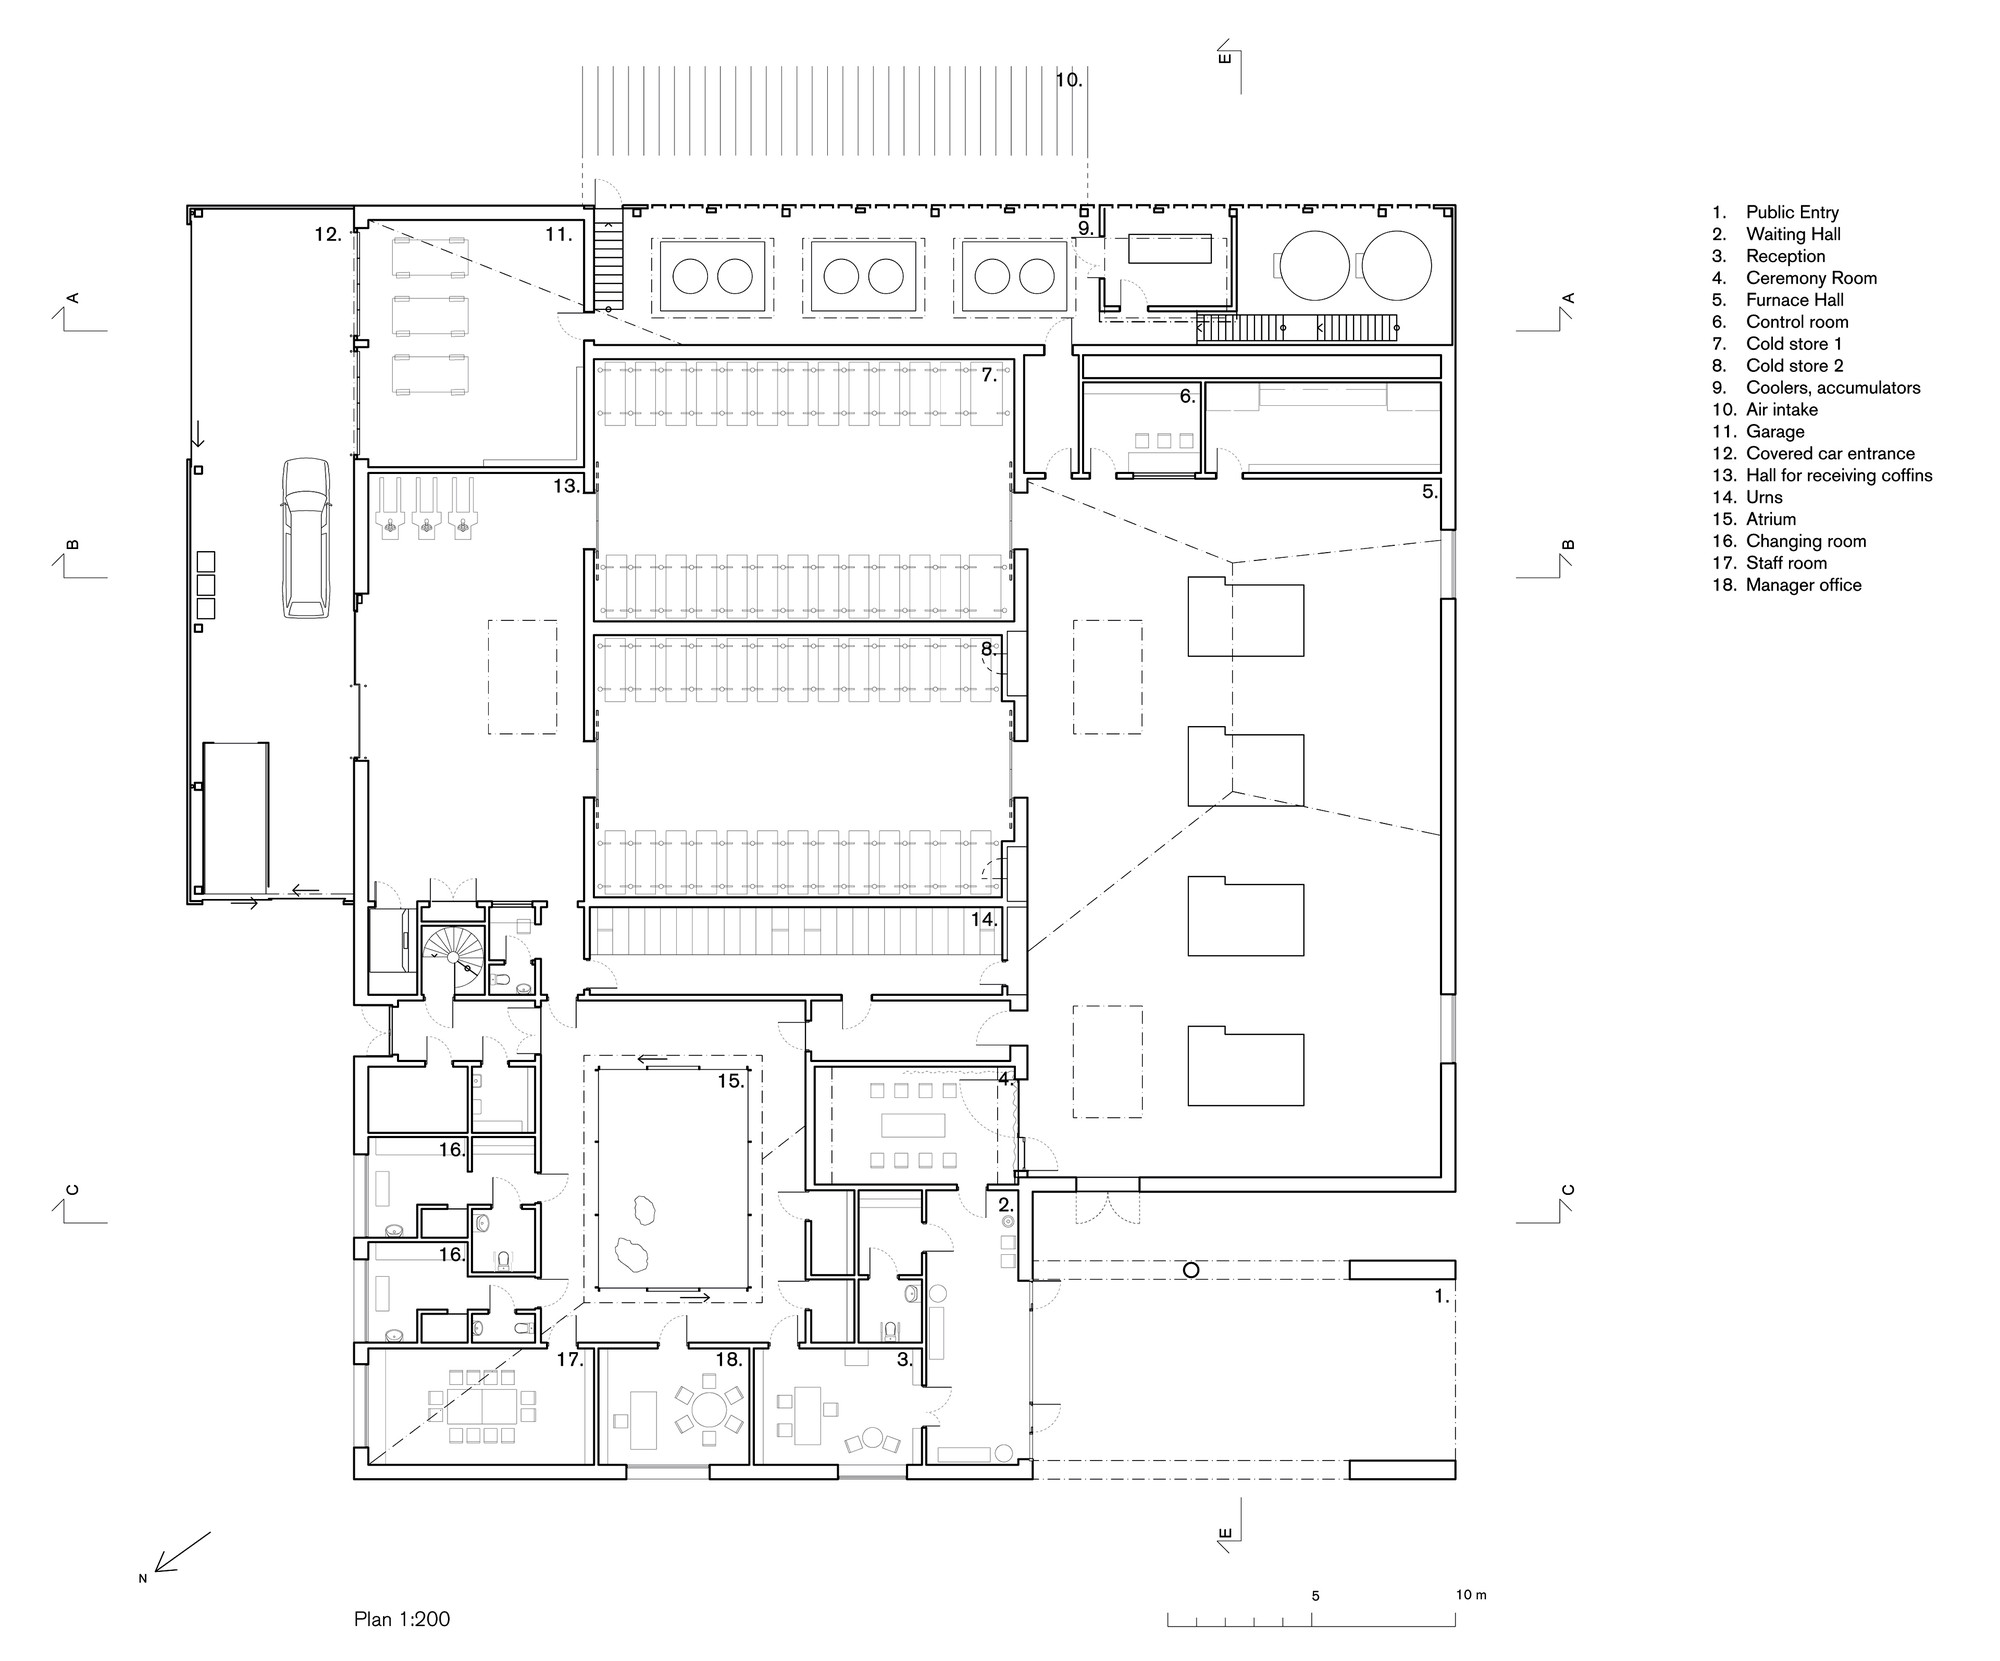 54124e3bc07a806c2300007f The New Crematorium The Woodland Cemetery Johan Celsing Arkitektkontor Floor Plan on Ada Public Restroom Floor Plans